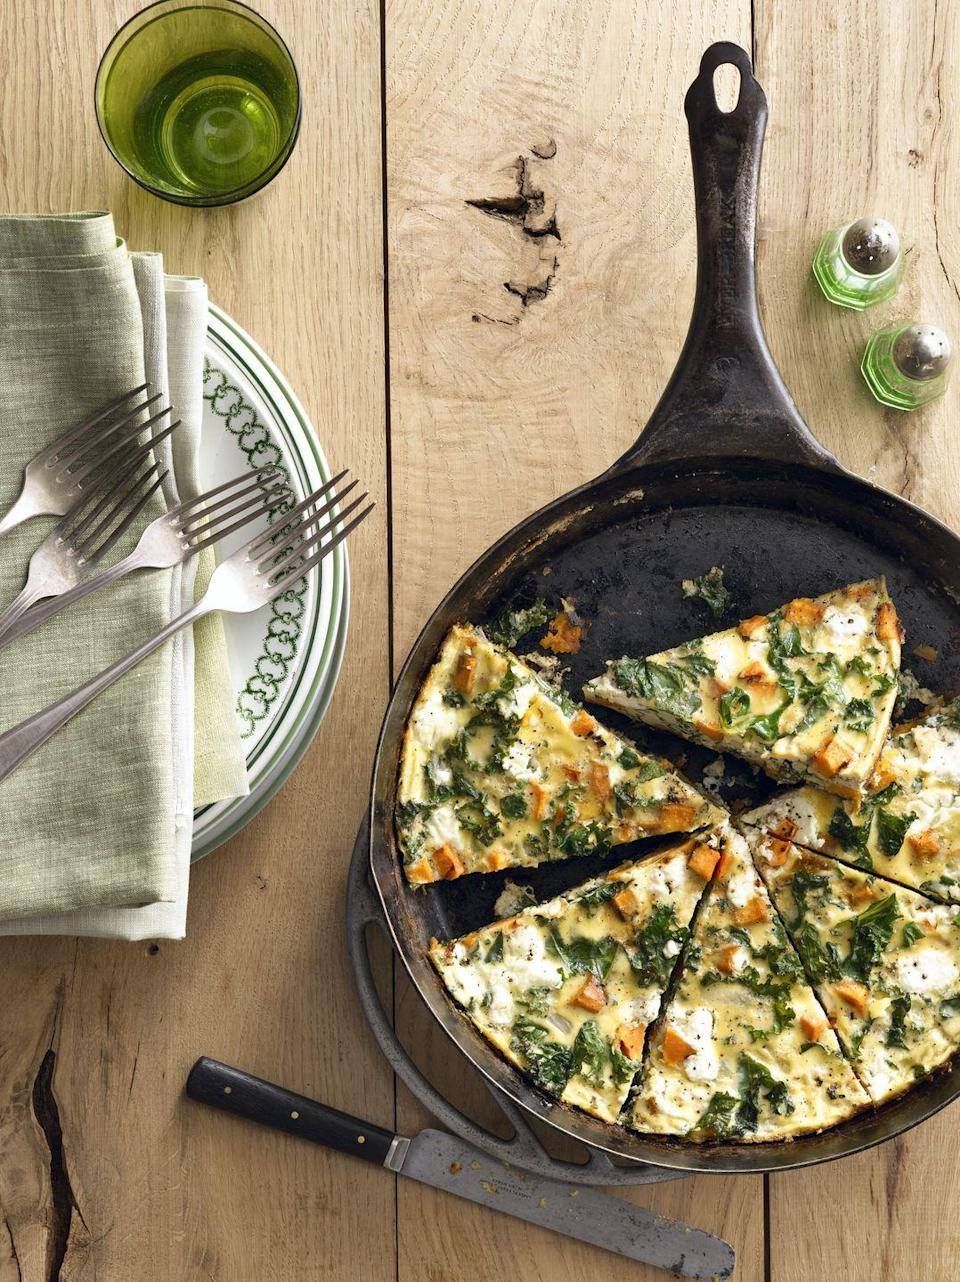 """<p>The whole family will gobble up this delicious and easy frittata that is perfect for breakfast, lunch, or dinner. </p><p><strong><a href=""""https://www.countryliving.com/food-drinks/recipes/a5502/sweet-potato-kale-frittata-recipe-clx0914/"""" rel=""""nofollow noopener"""" target=""""_blank"""" data-ylk=""""slk:Get the recipe"""" class=""""link rapid-noclick-resp"""">Get the recipe</a>.</strong></p><p><a class=""""link rapid-noclick-resp"""" href=""""https://www.amazon.com/Pre-Seasoned-Cookware-Heat-Resistant-Stovetop-Induction/dp/B074XCWQS2?tag=syn-yahoo-20&ascsubtag=%5Bartid%7C10050.g.1064%5Bsrc%7Cyahoo-us"""" rel=""""nofollow noopener"""" target=""""_blank"""" data-ylk=""""slk:SHOP CAST IRON SKILLETS"""">SHOP CAST IRON SKILLETS</a></p>"""